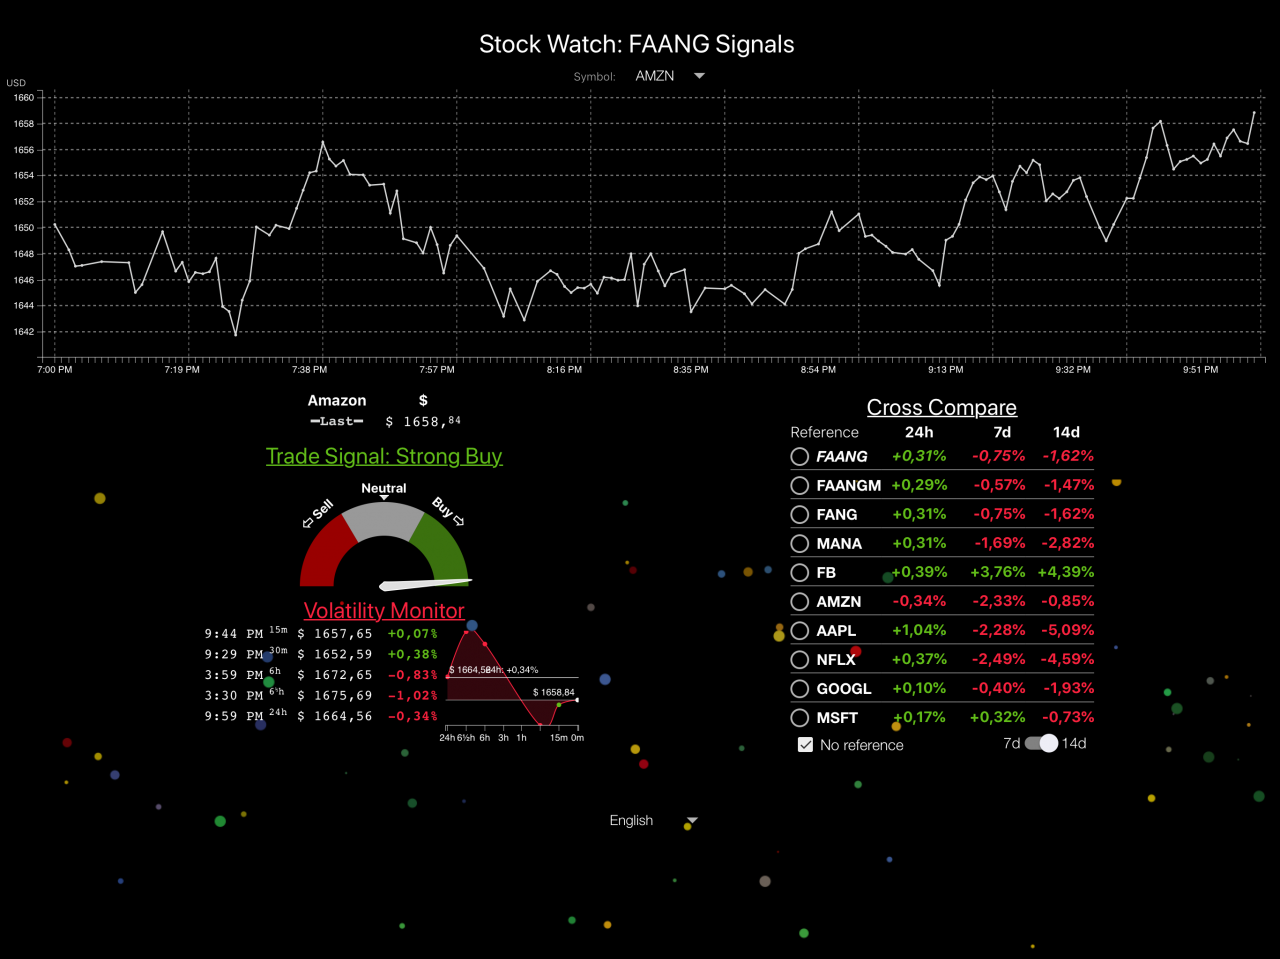 Stock Watch: FAANG Signals